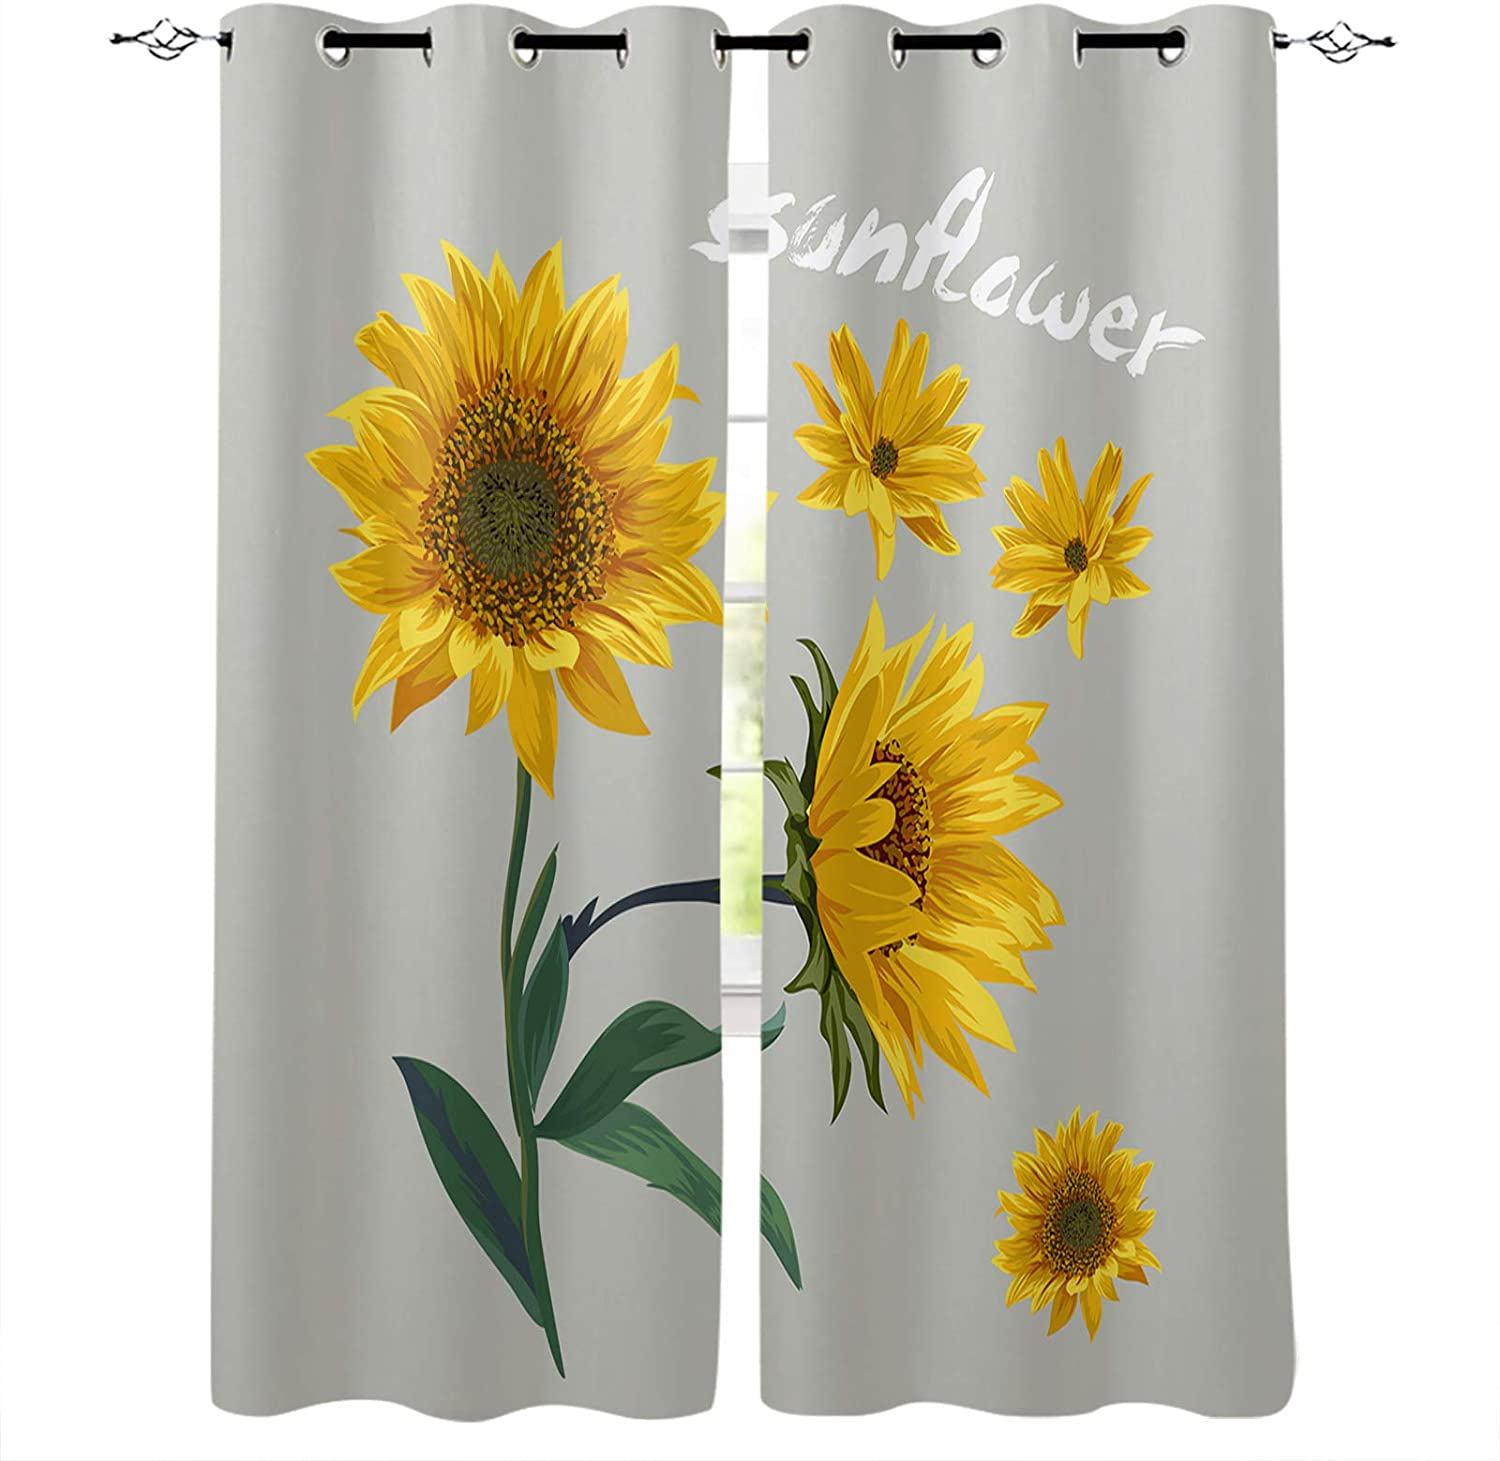 Blackout Curtains Mail order cheap 63 Inch Limited time for free shipping Long Sunflower Backg Bedroom for Gray